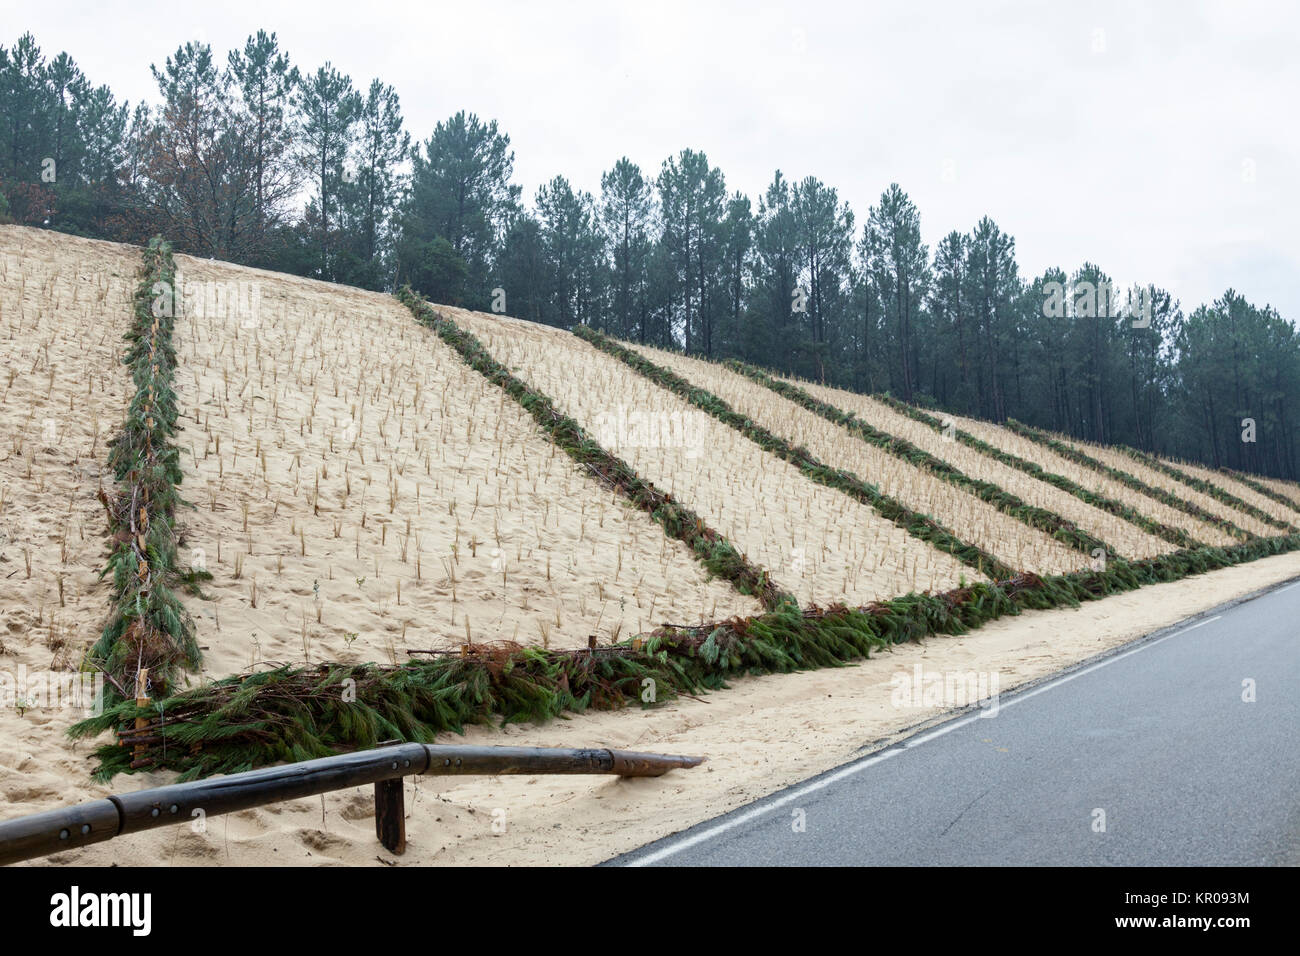 On a sand dune at Capbreton (Landes - France): a recent planting of beach grasses plus using of a mechanical fixation - Stock Image